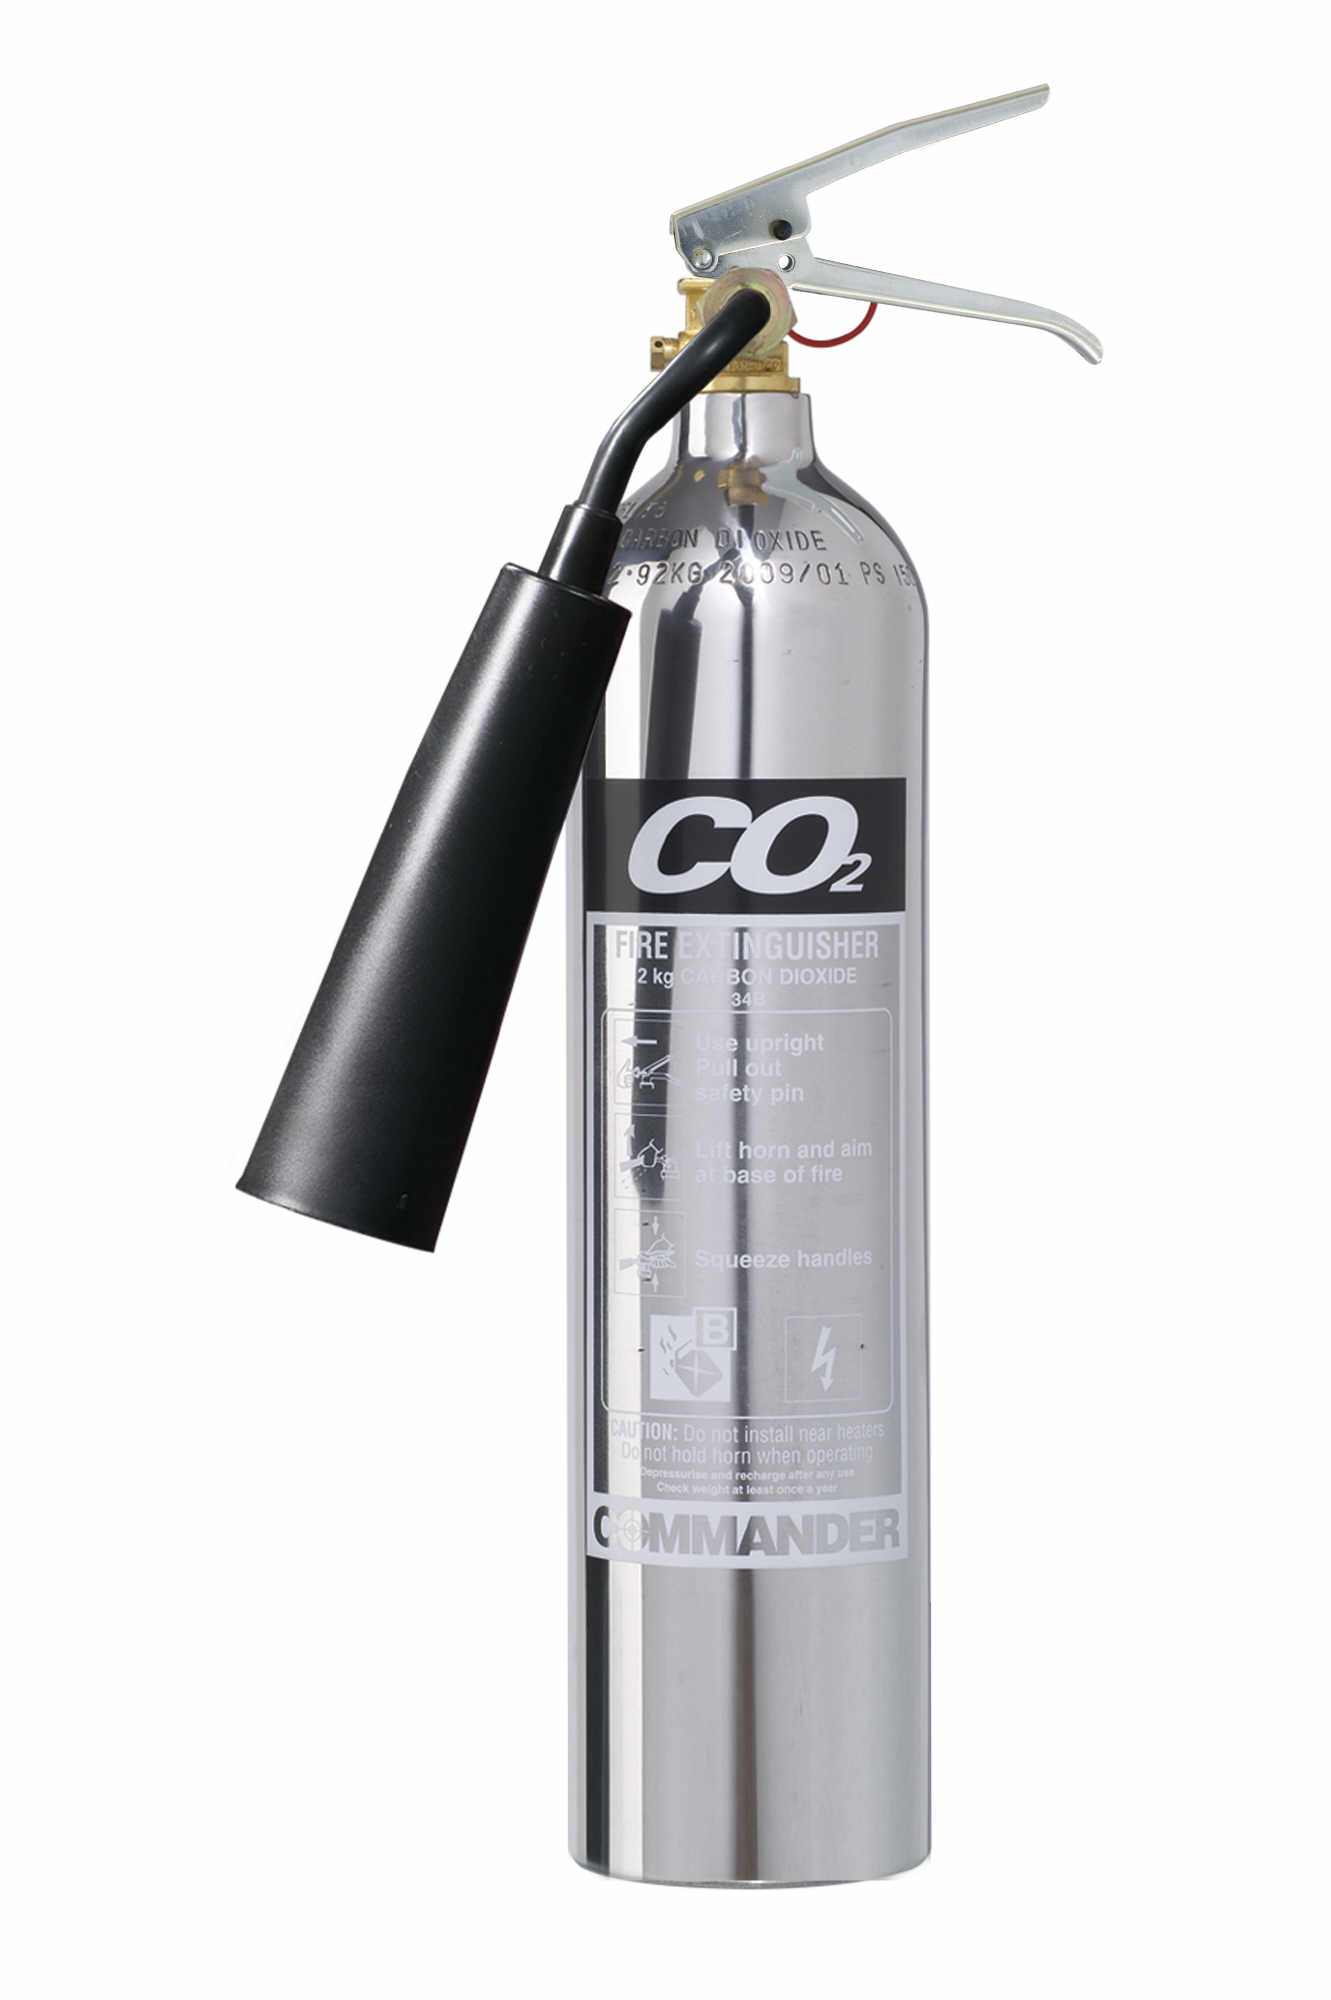 Co2 Extinguishers Fire Crest Fire Protection Cornwall